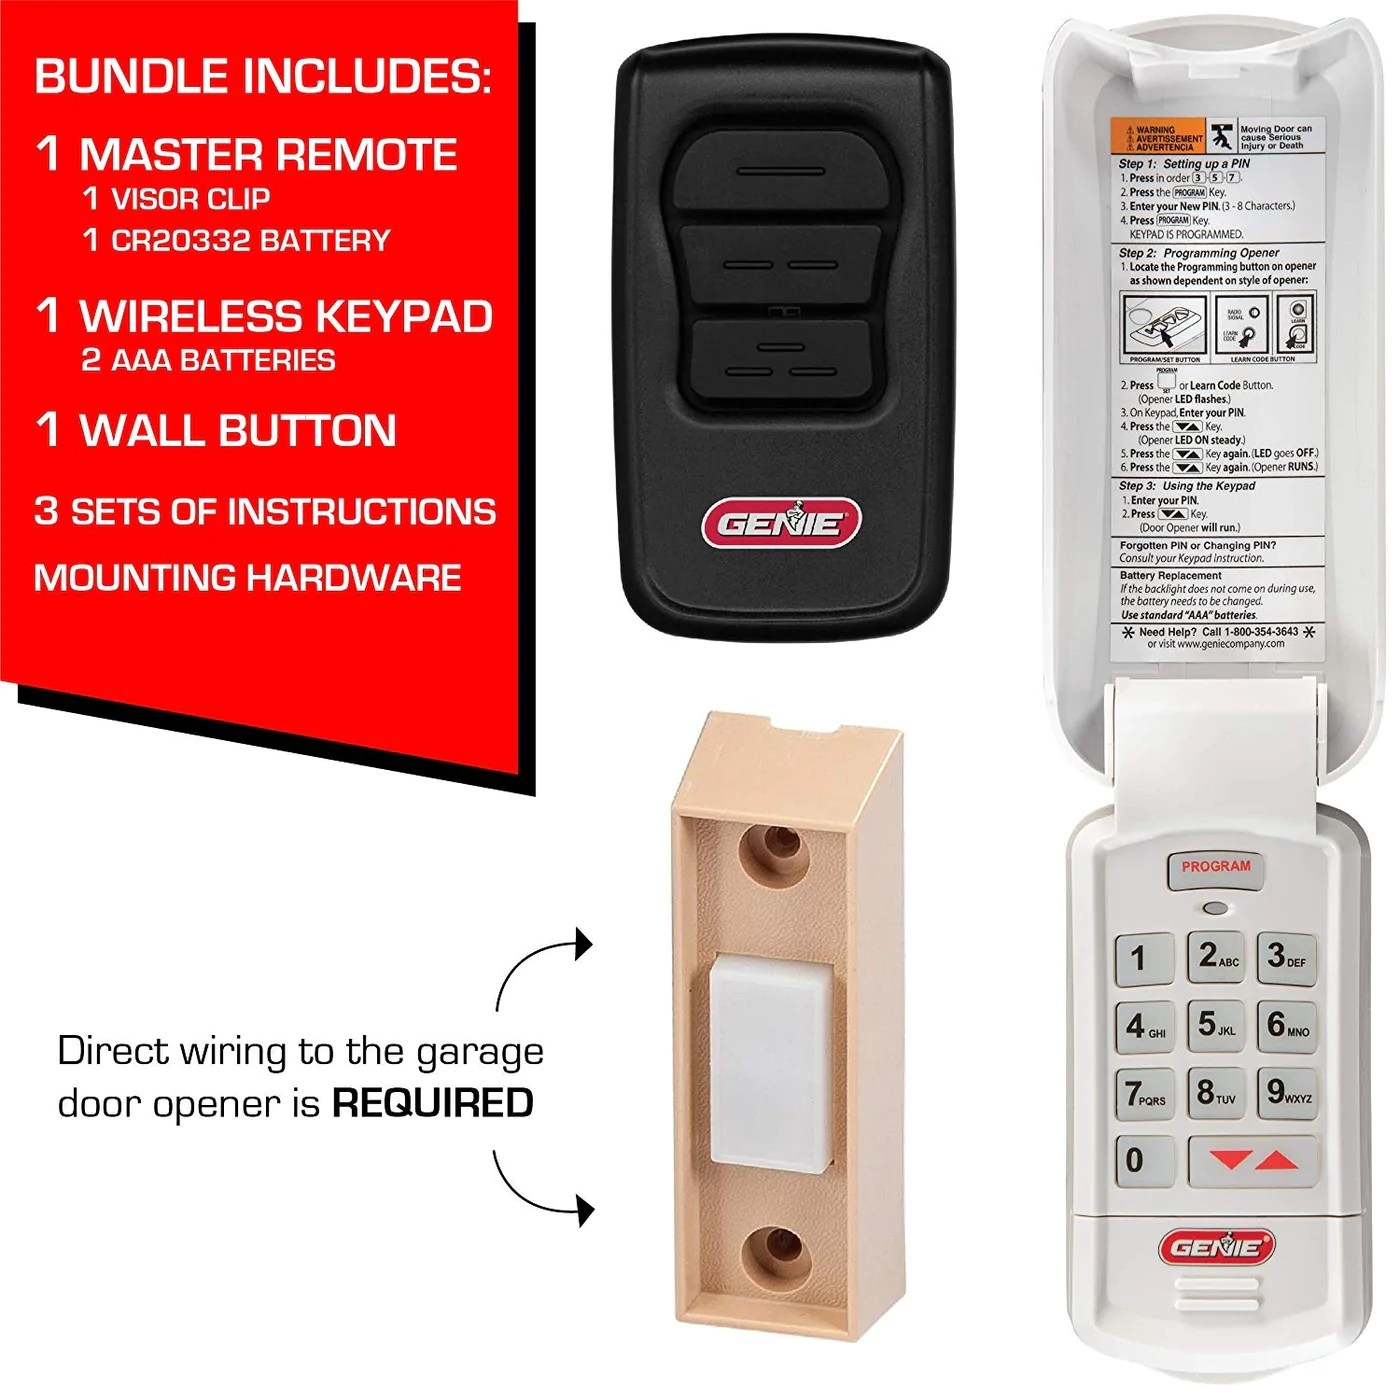 medium resolution of  genies accessories bundle for garage door openers come with diy detailed illustrated programming instructions genie s